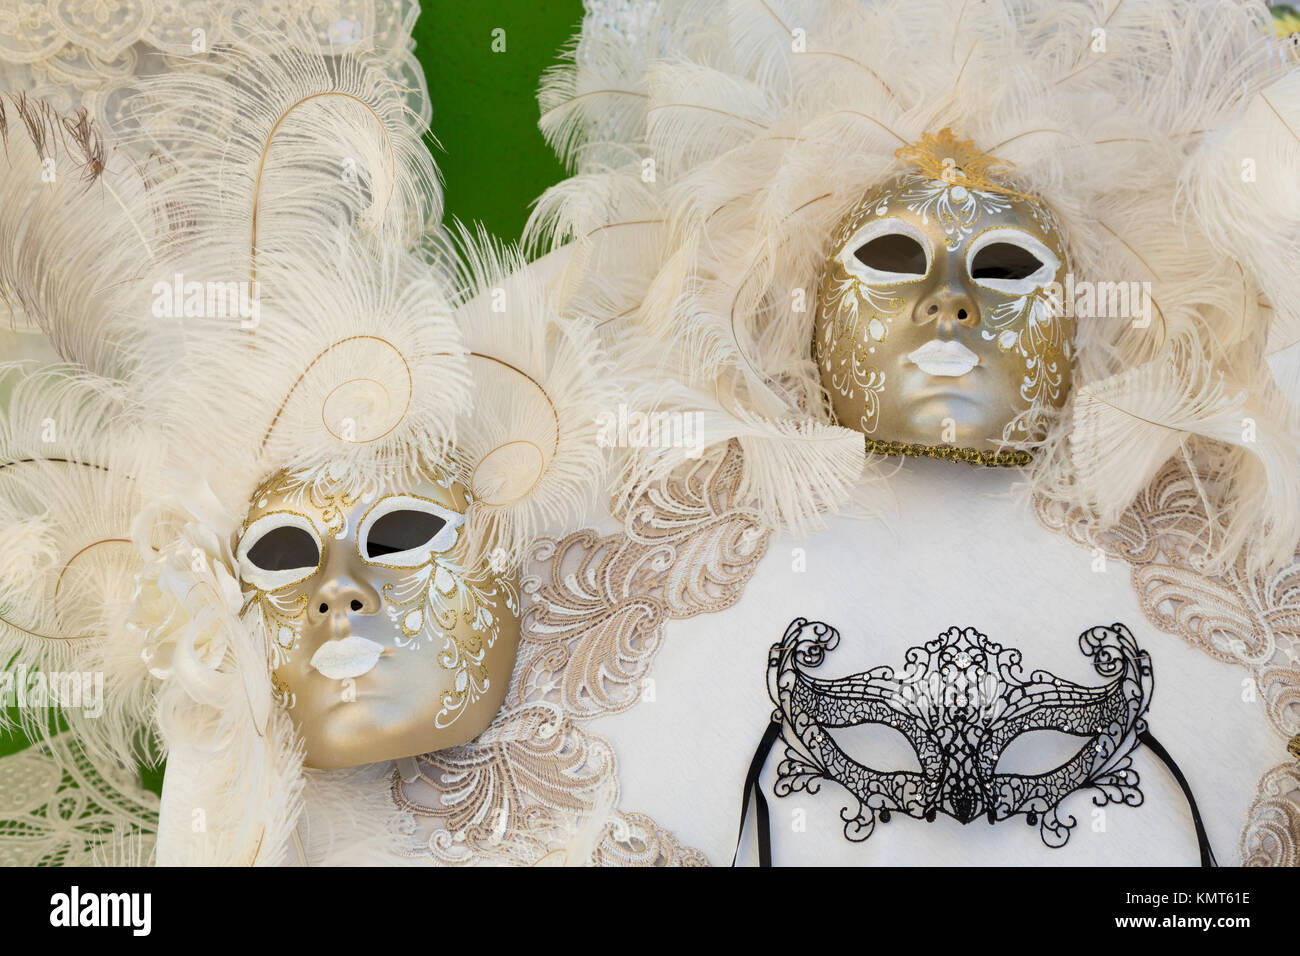 Closeup of masks in the Venetian vlllage of Burano, Venice, Italy, Europe. - Stock Image